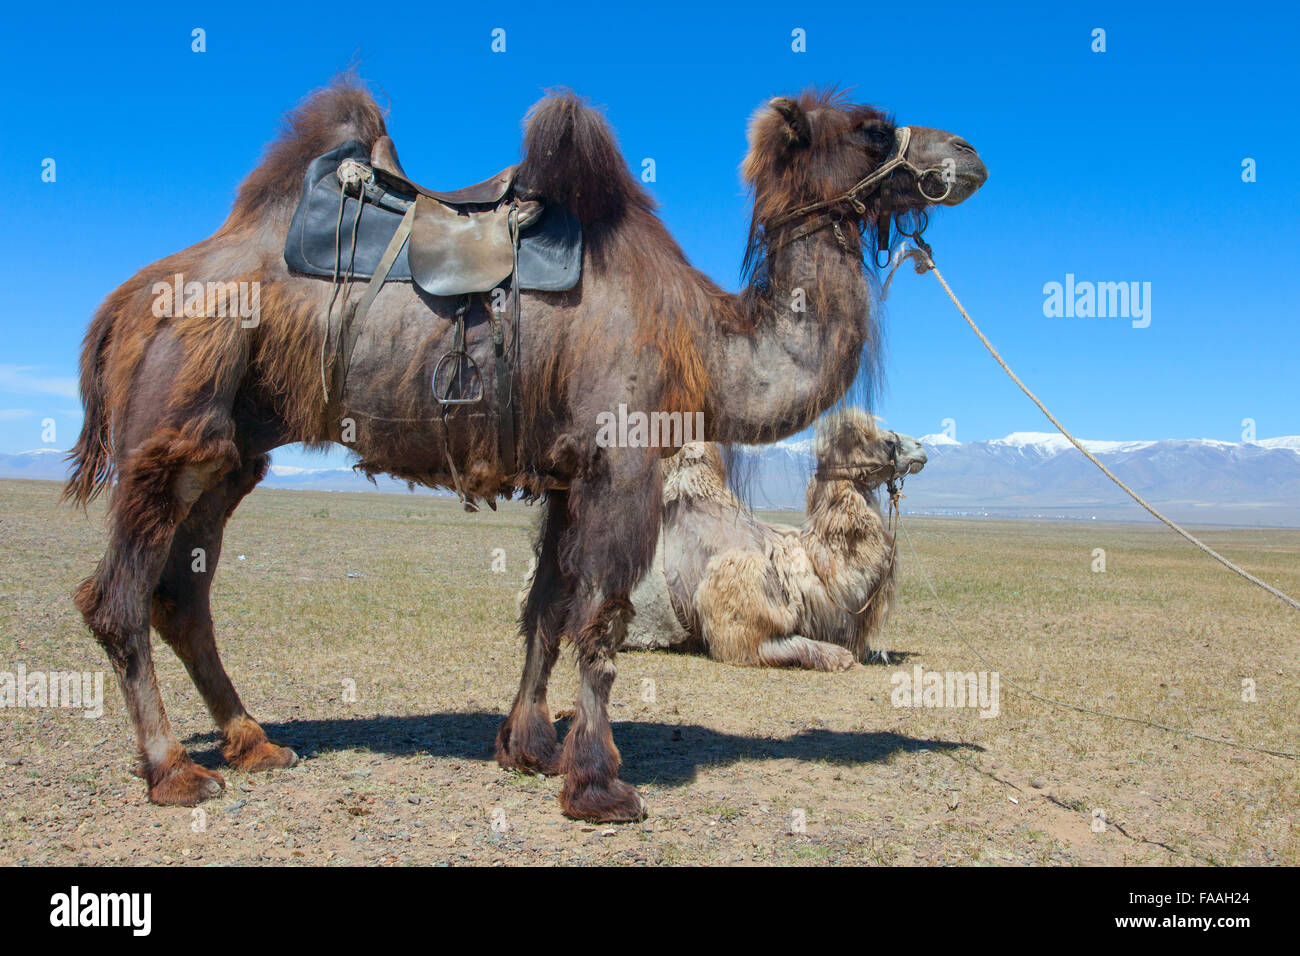 camel with saddle photos camel with saddle images alamy. Black Bedroom Furniture Sets. Home Design Ideas